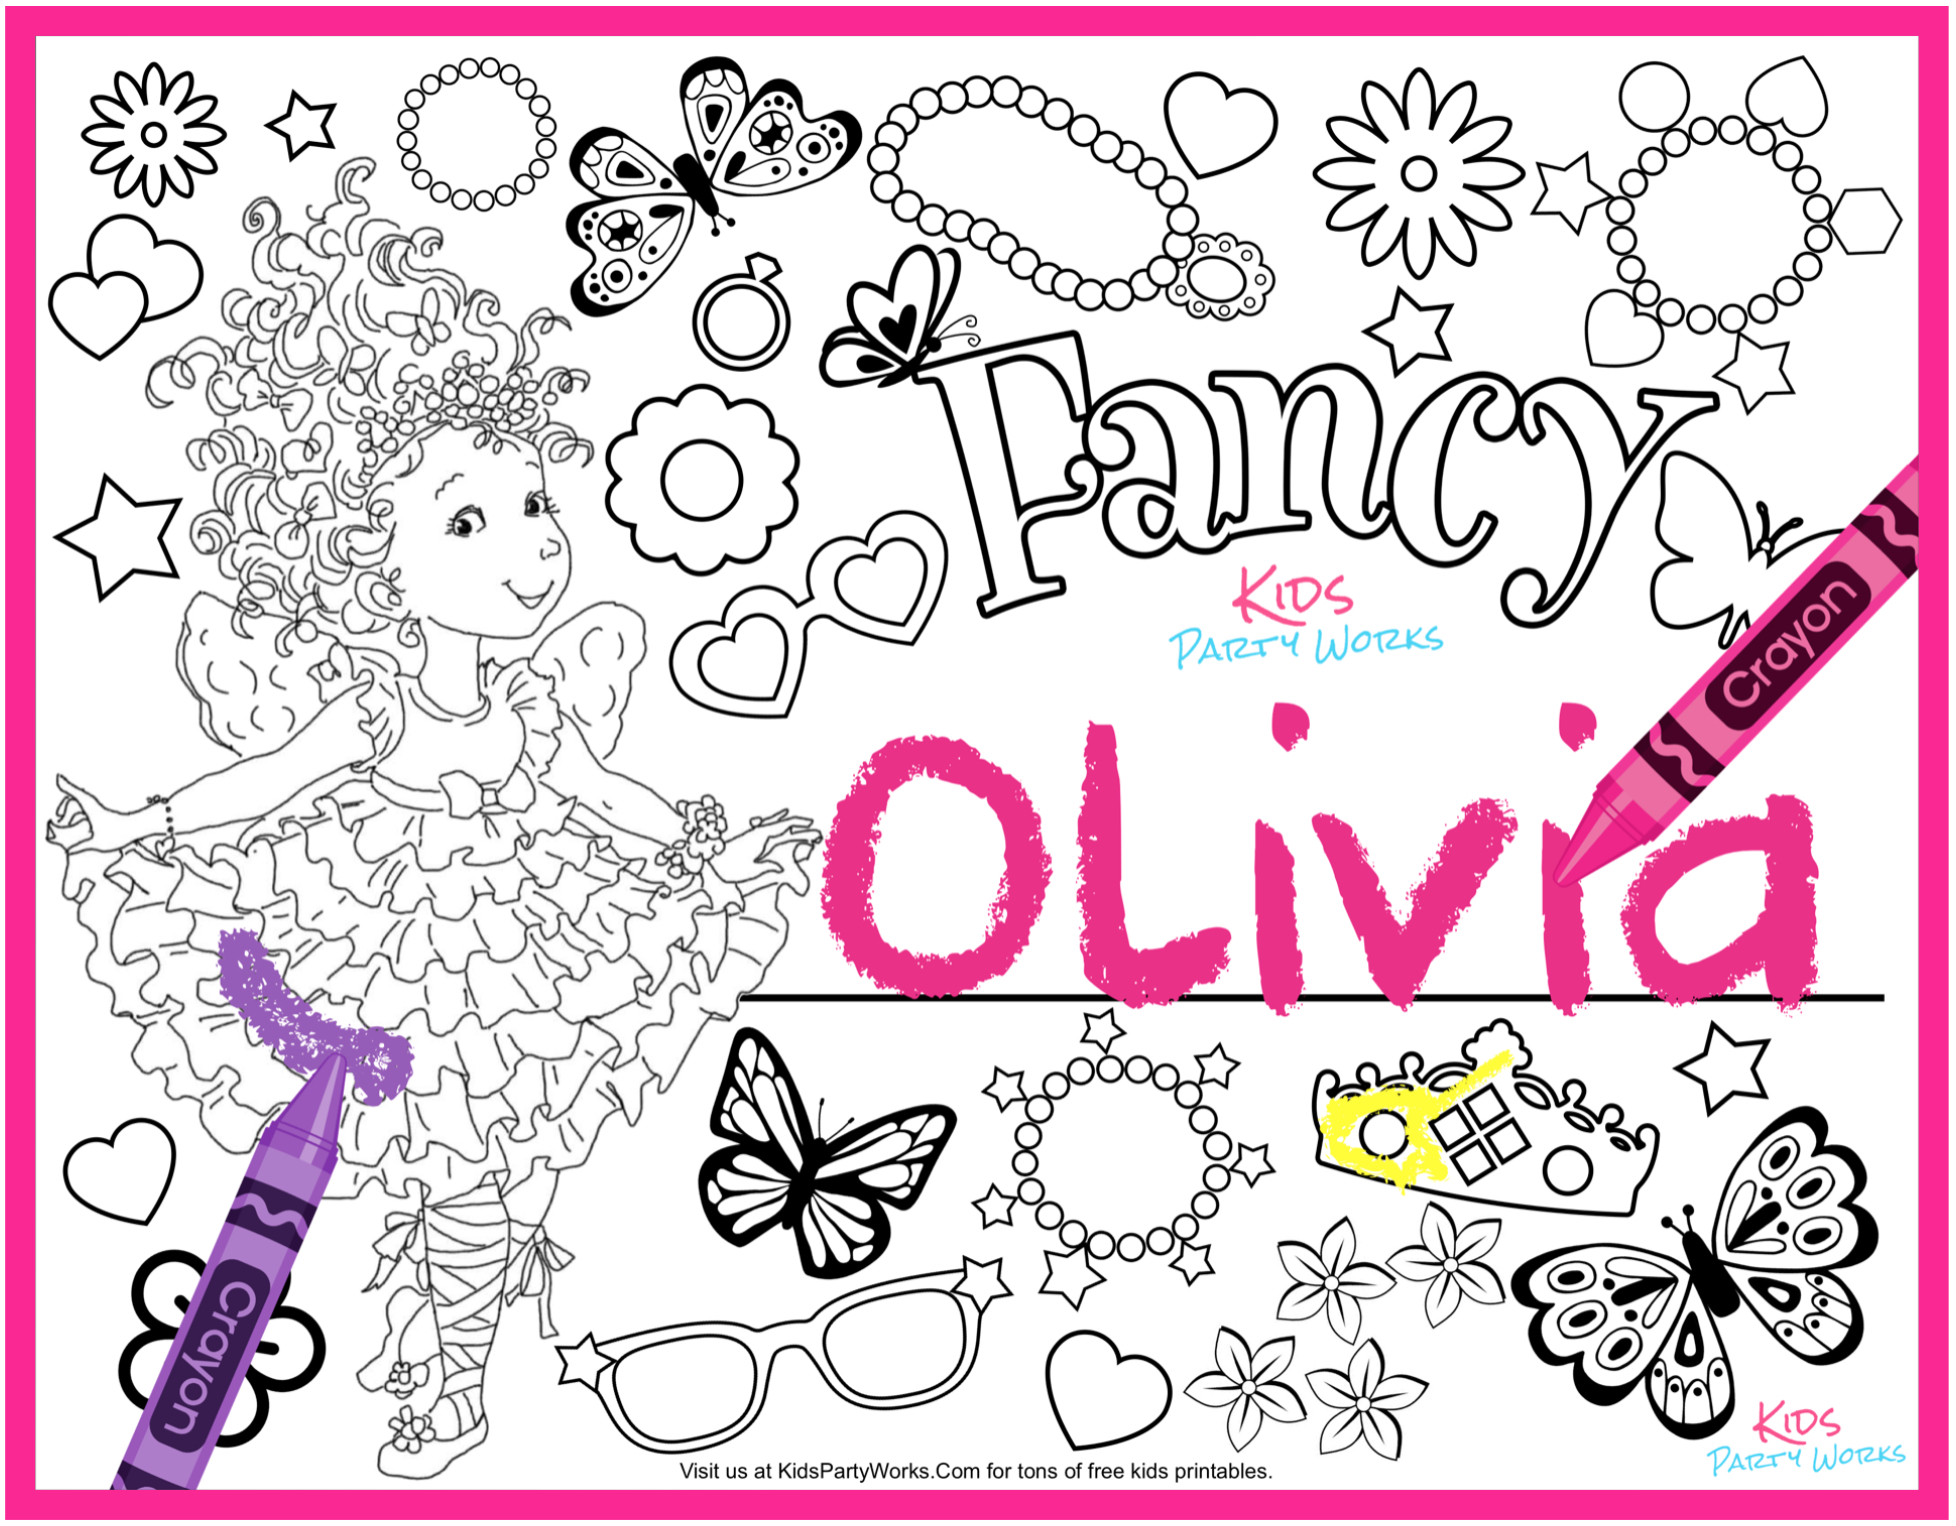 Free fancy nancy coloring page to personalize with your name.